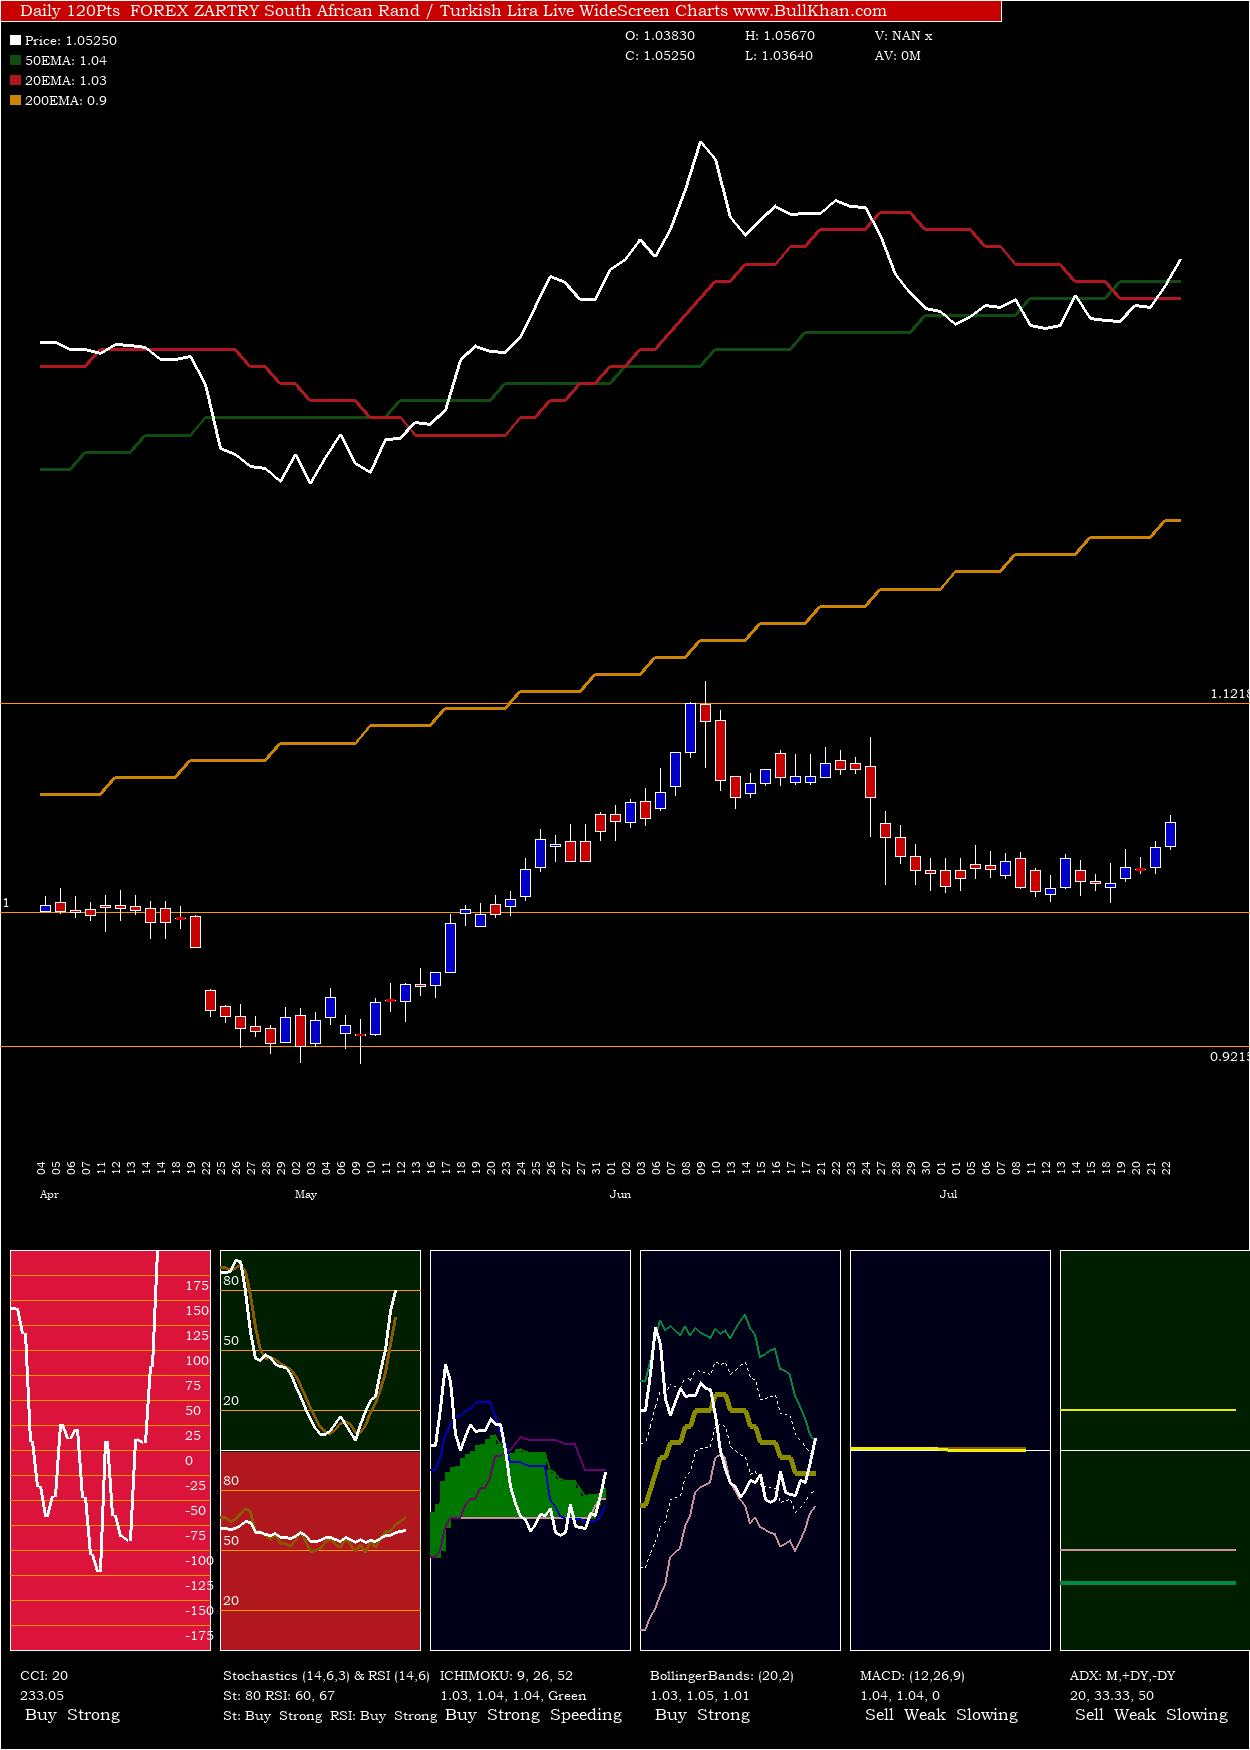 South African charts and indicators